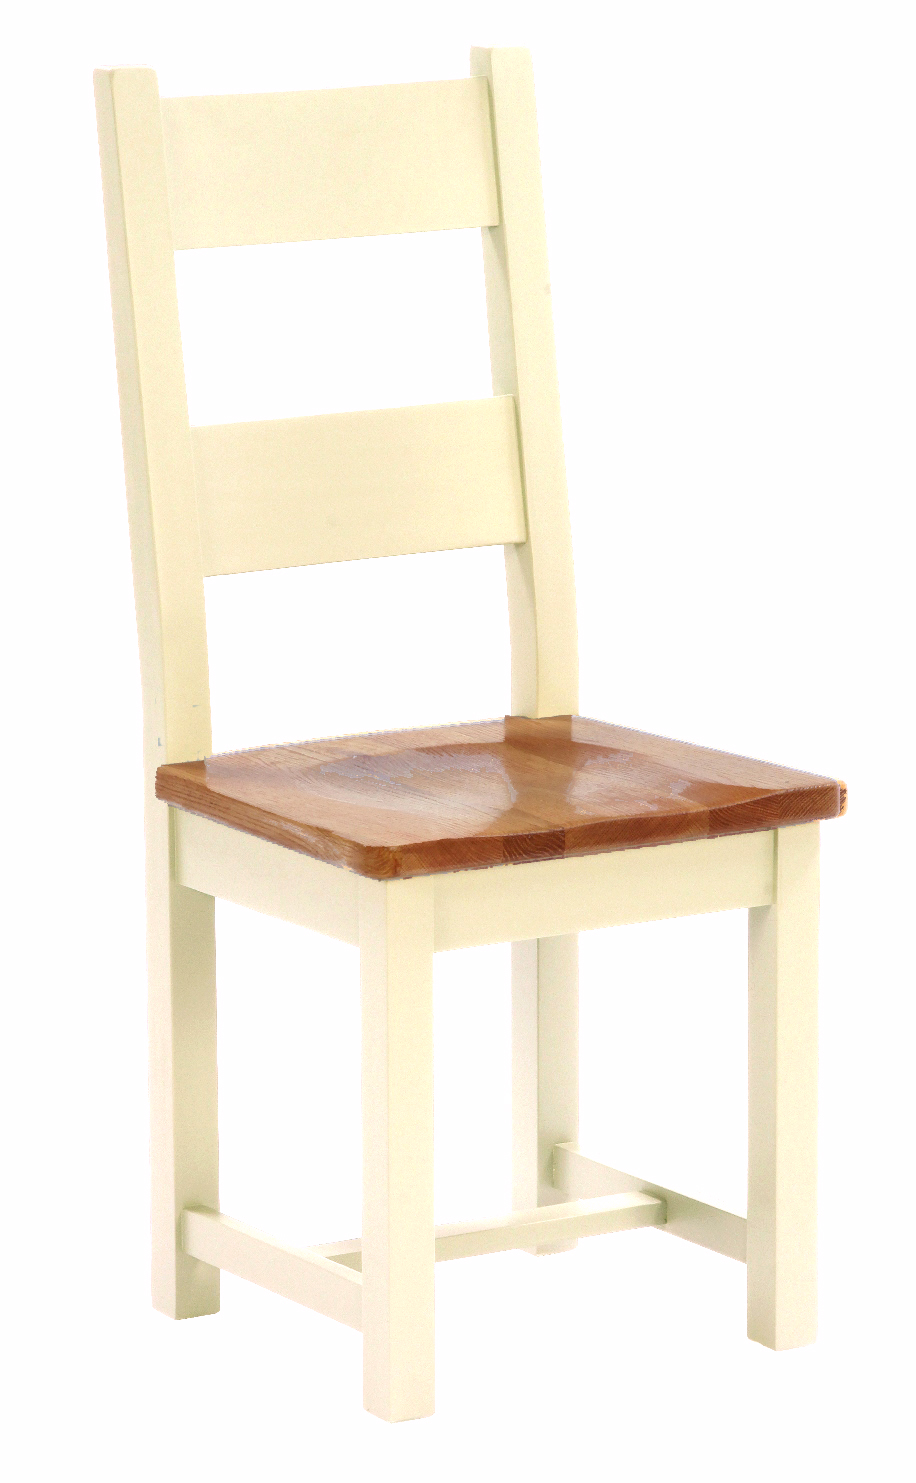 Dining Chair  Colour-Ivory  w 47 x d 50 x h 108 cm  € 172  ( 40% Off - NOW € 103.20 )  Product Code: CANB004